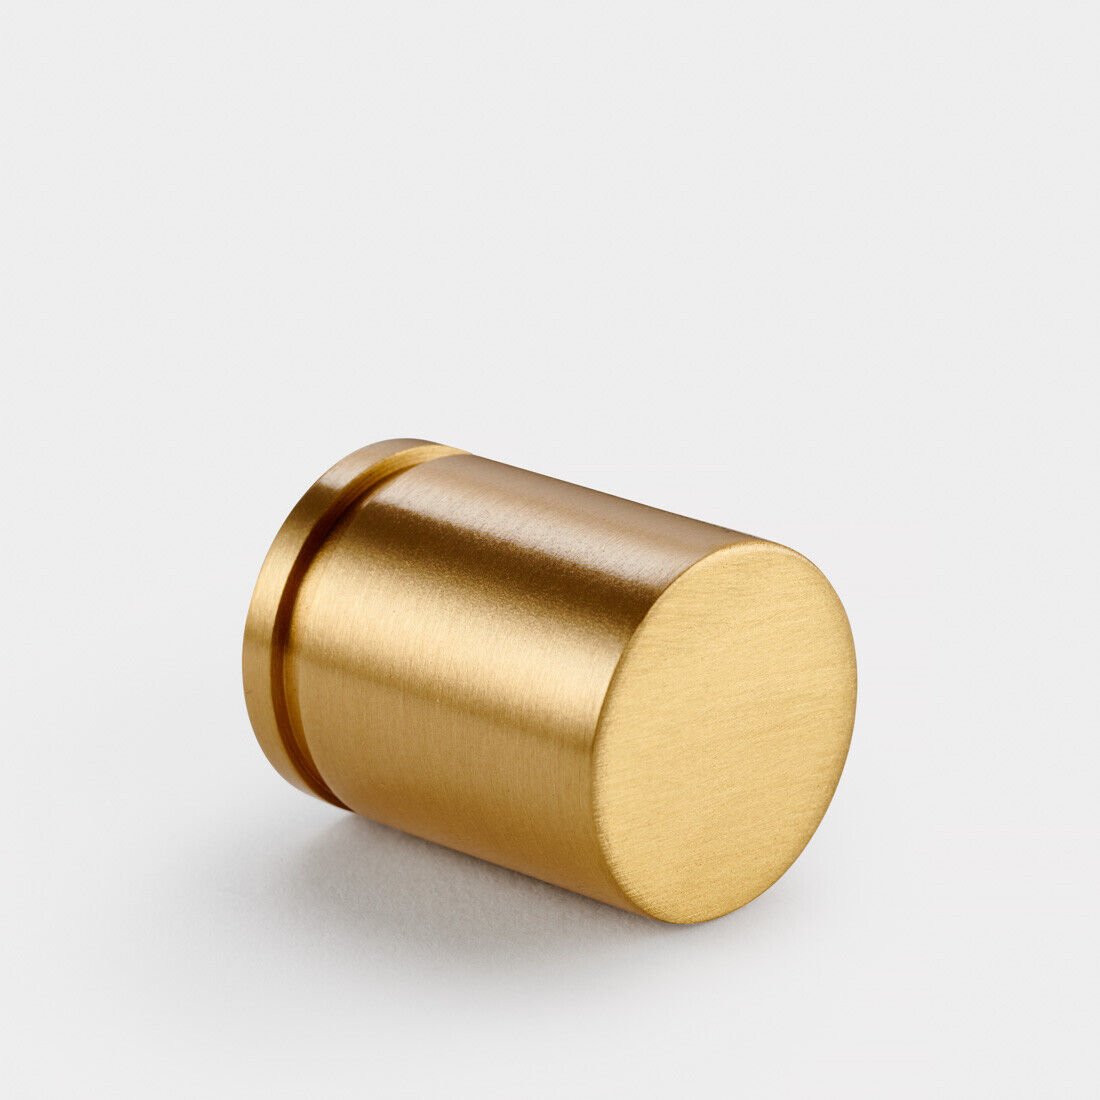 American modern simple cabinet door drawer cabinet handle brass single hole cabinet handle pull handle R7